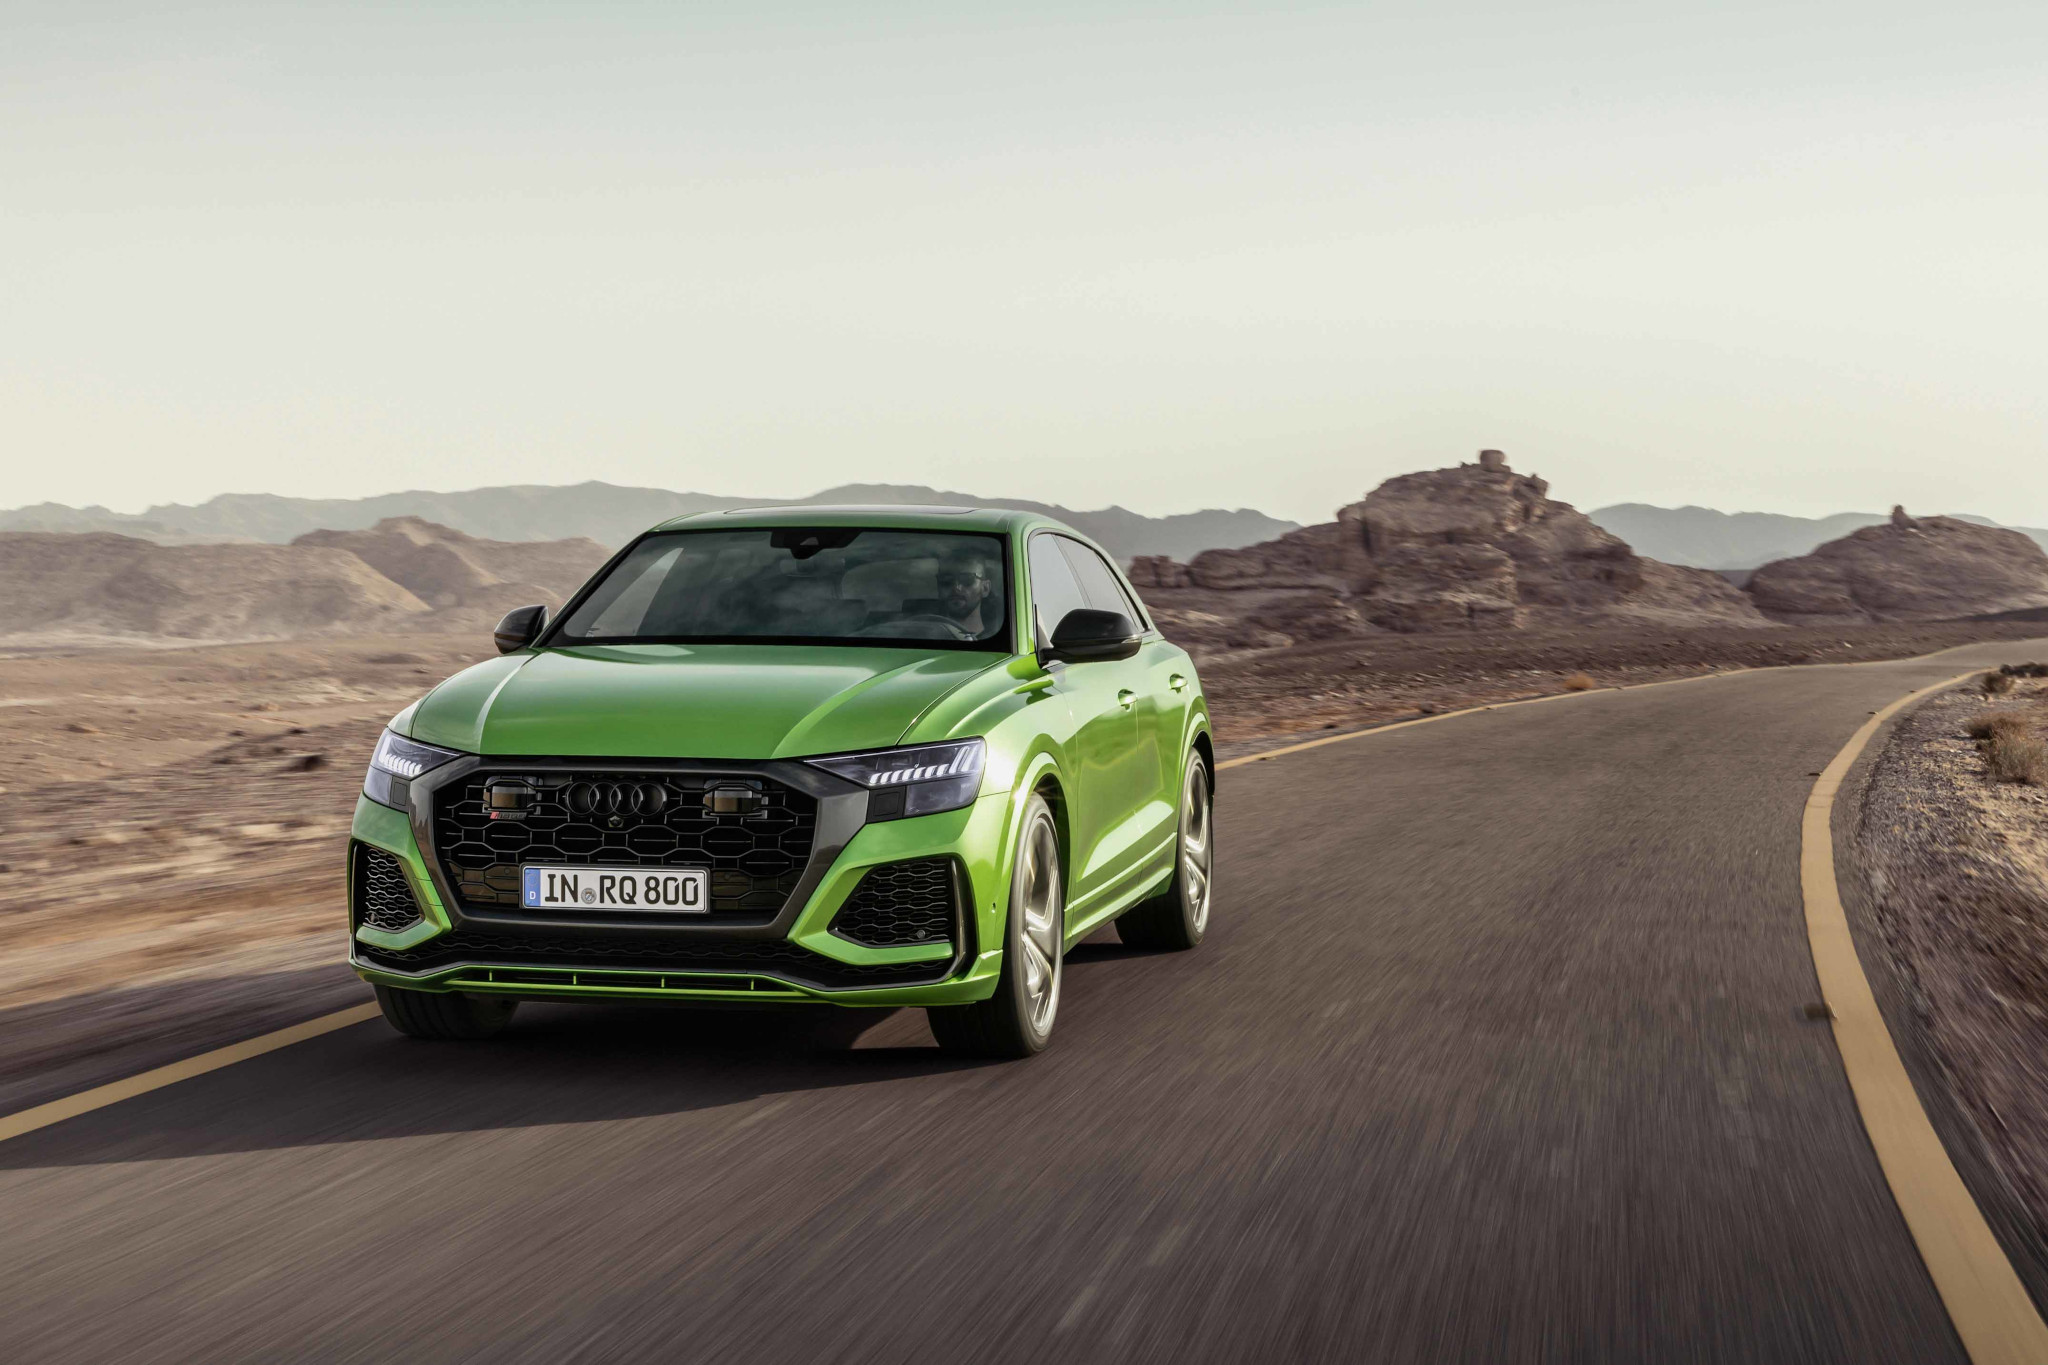 2021 Audi RS Q8: The School Drop-Off Lane Just Got a Lot Cooler